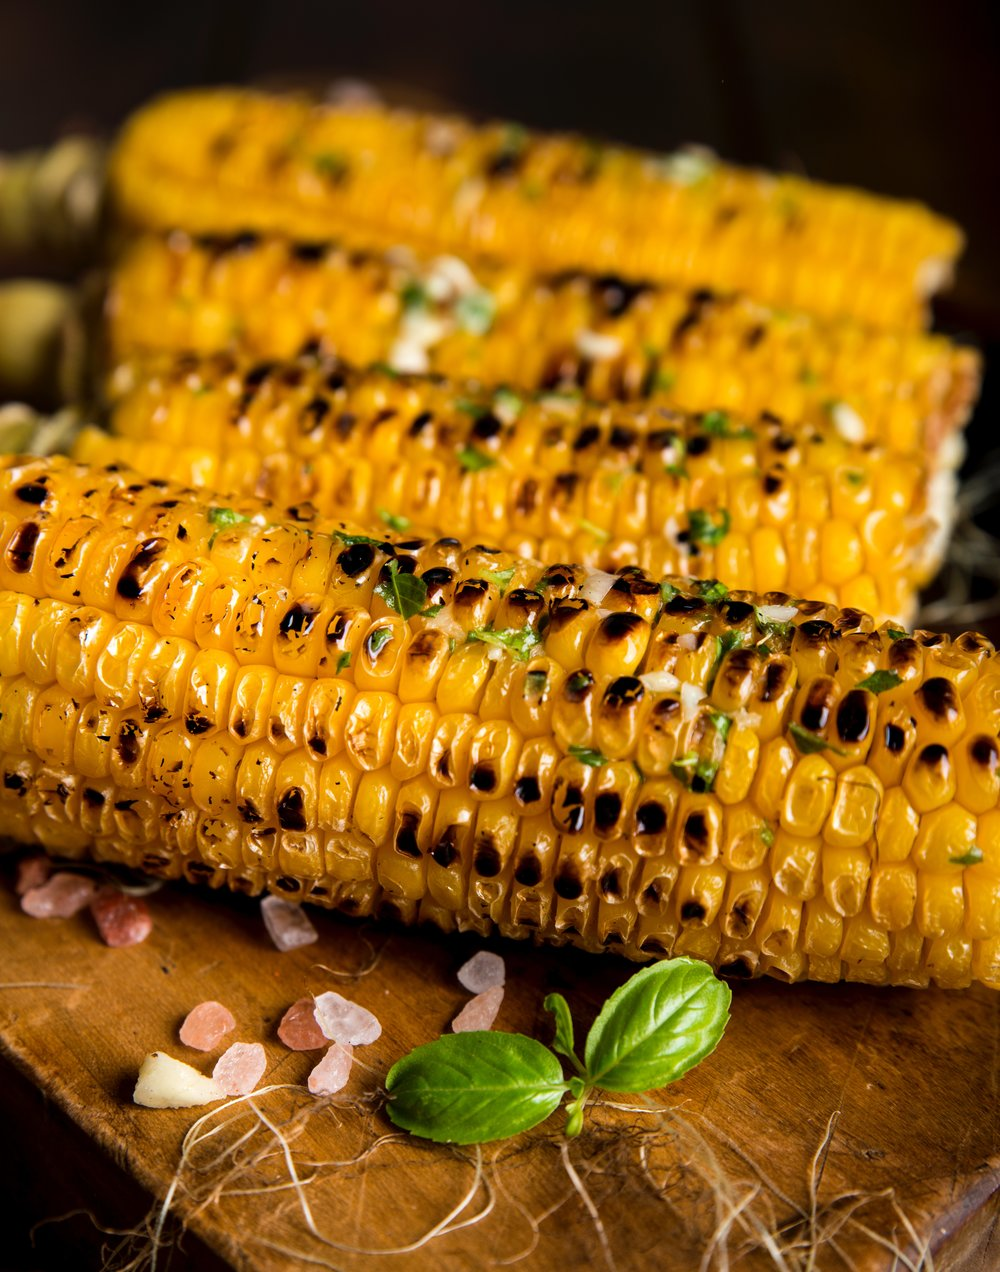 Grilled Corn Photo by  Dragne Marius  on  Unsplash